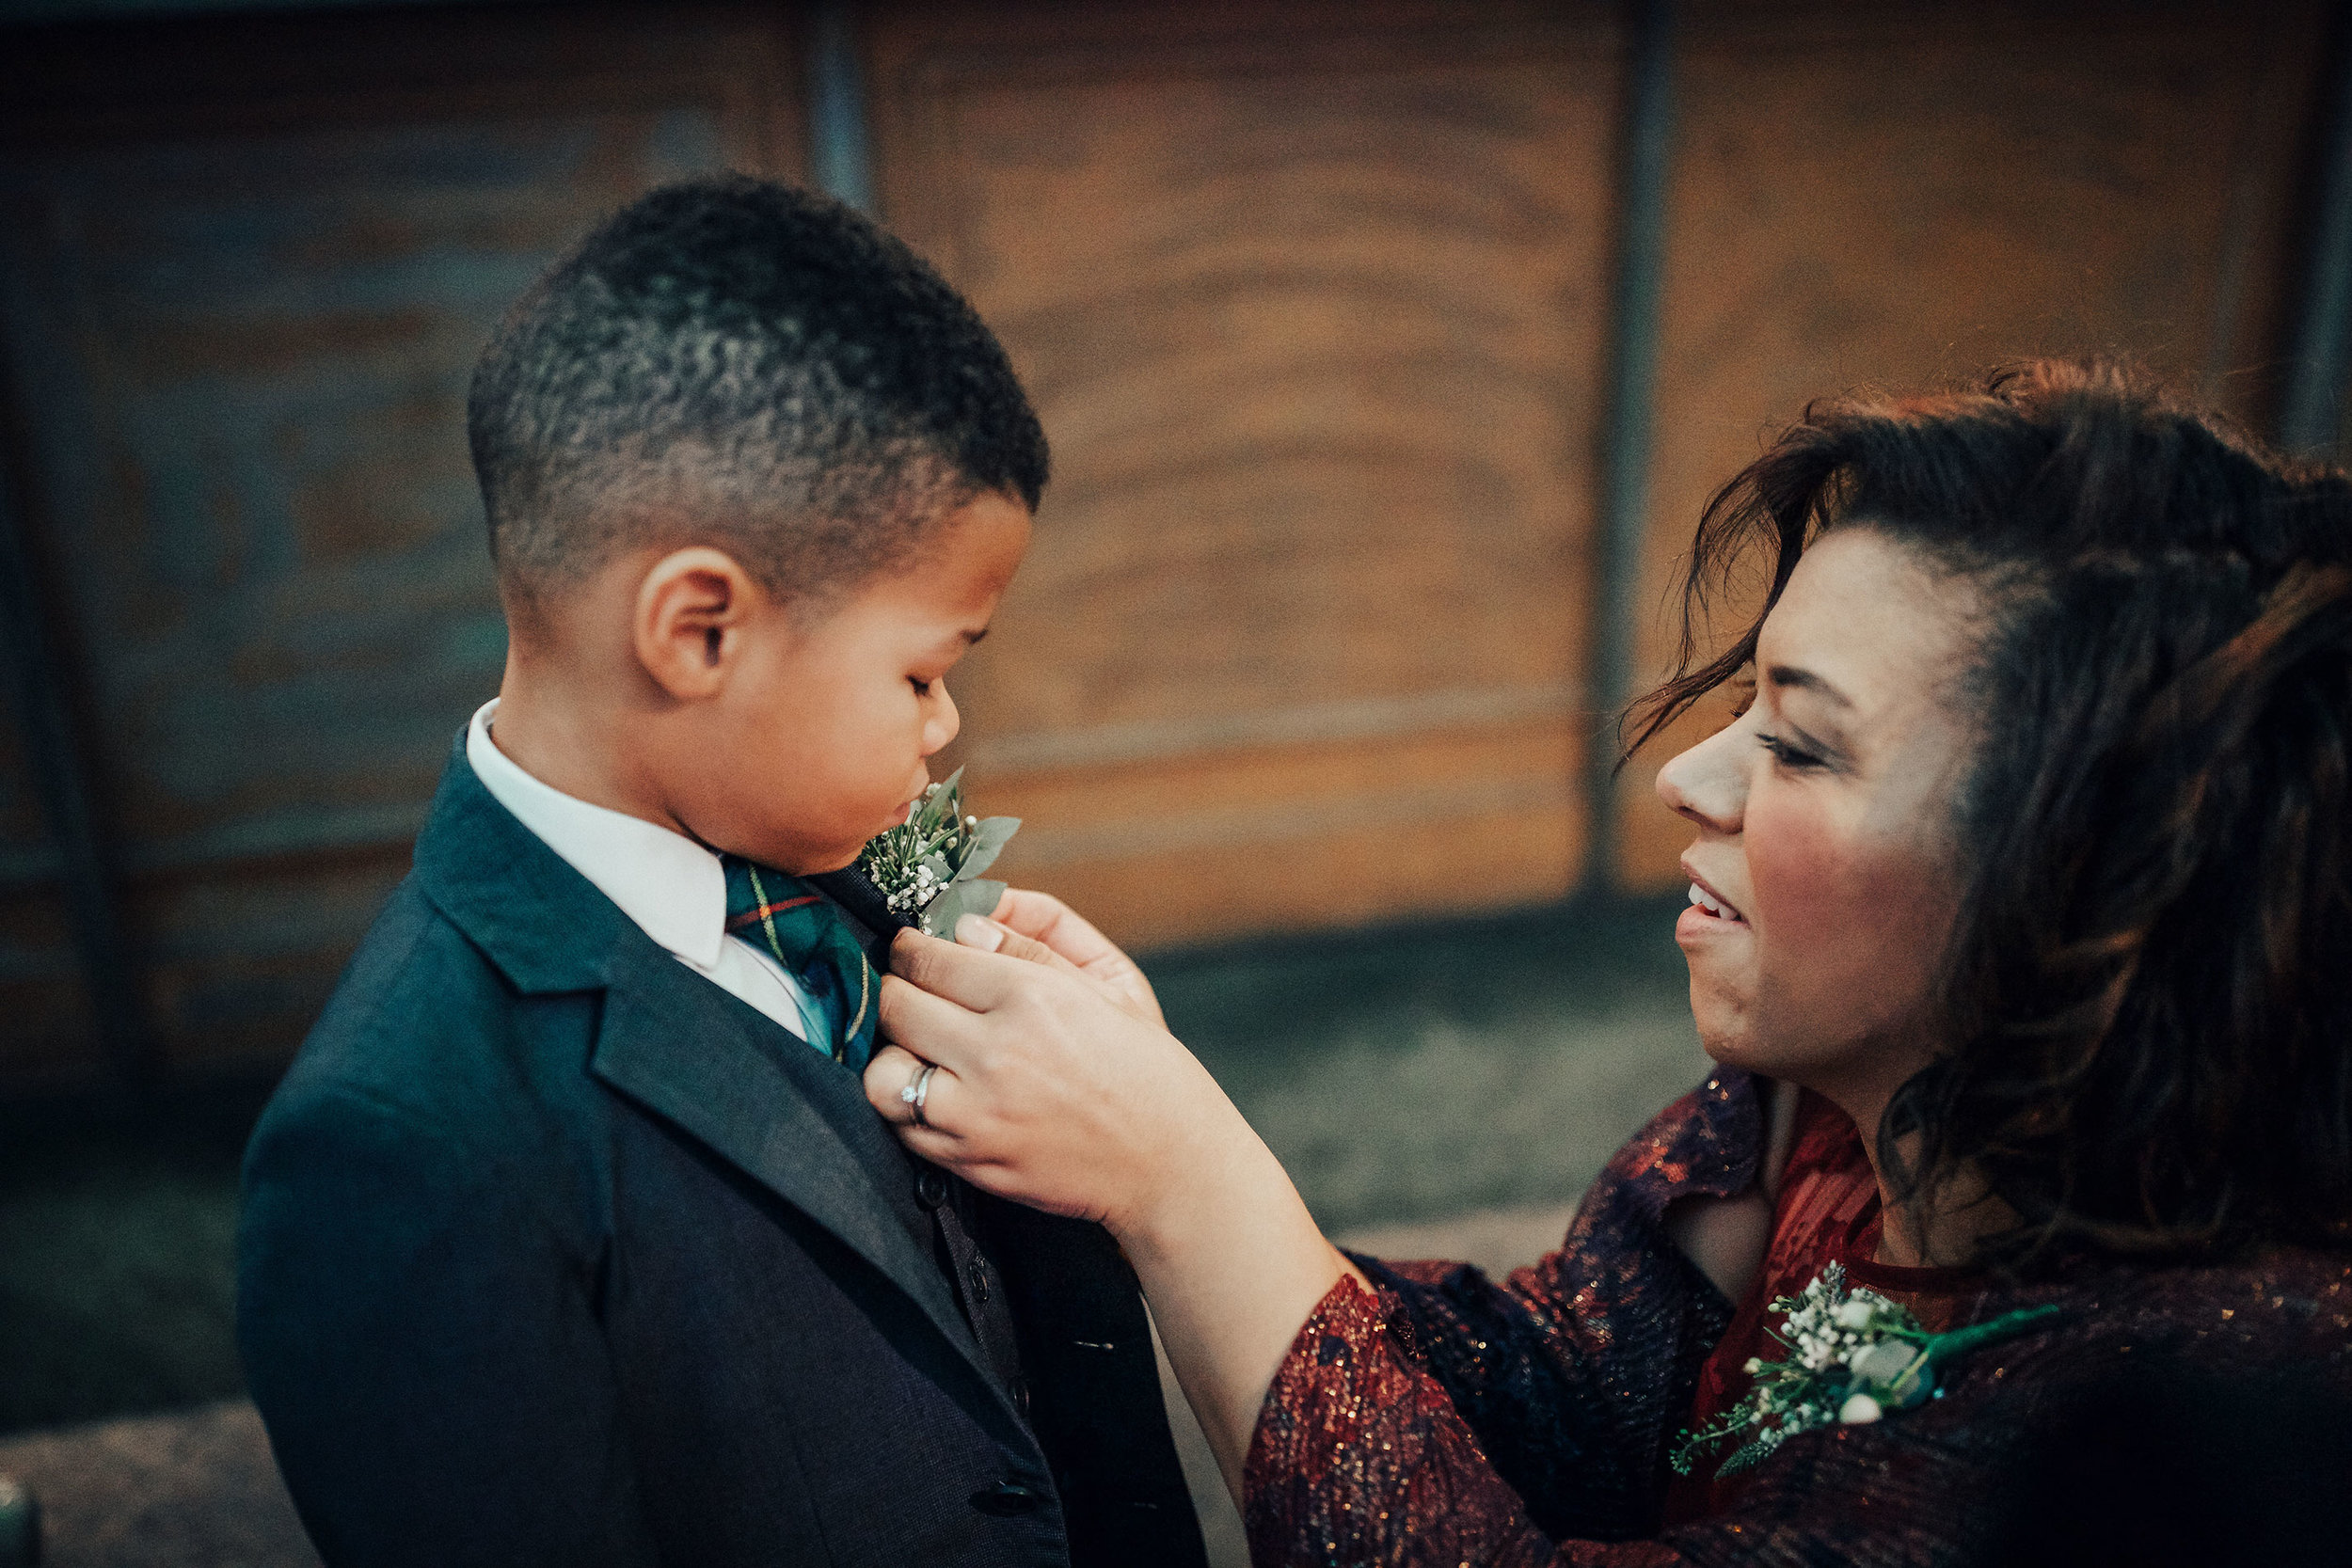 DRYGATE_WEDDING_PHOTOGRAPHER_PJ_PHILLIPS_WEDDING_PHOTOGRAPHY_35.jpg